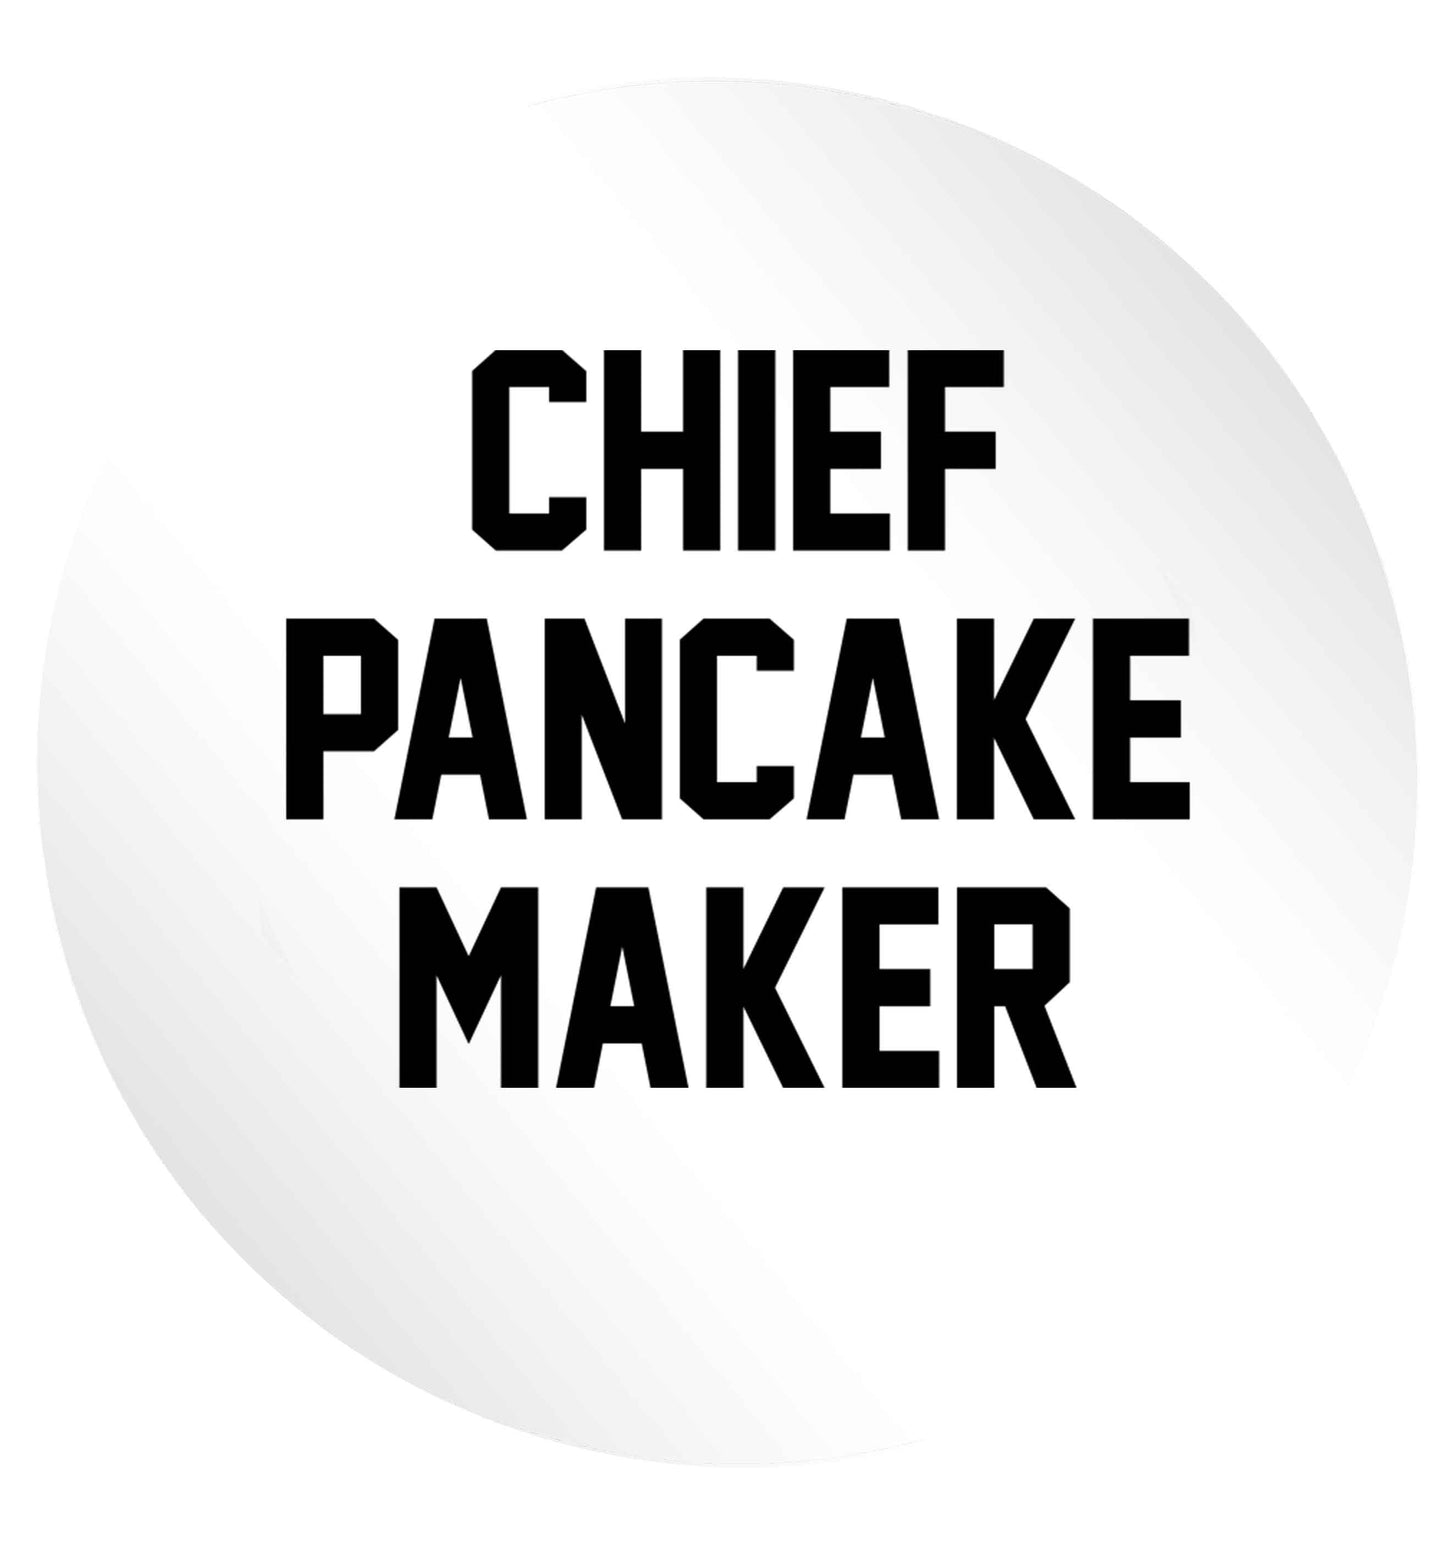 Chief pancake maker 24 @ 45mm matt circle stickers